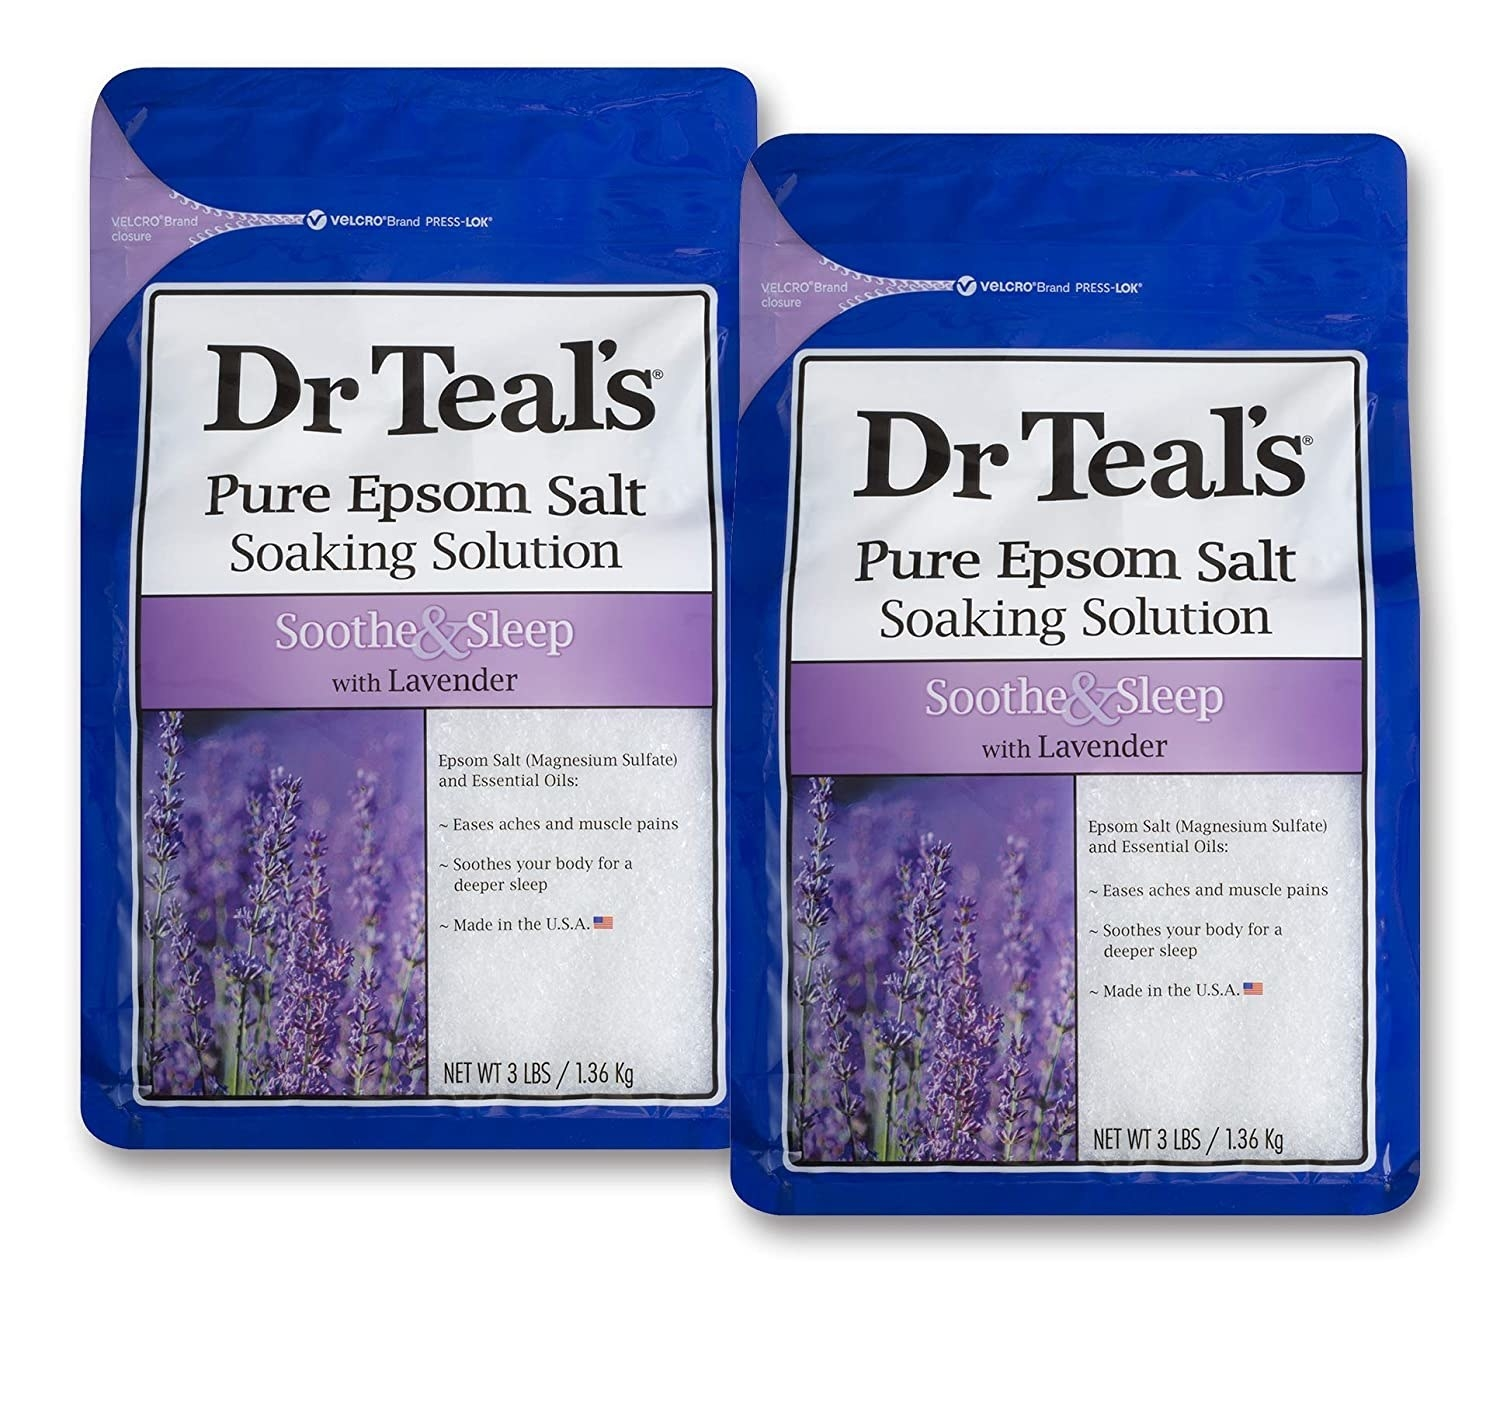 Two blue plastic packages of Dr. Teal's Epsom salt